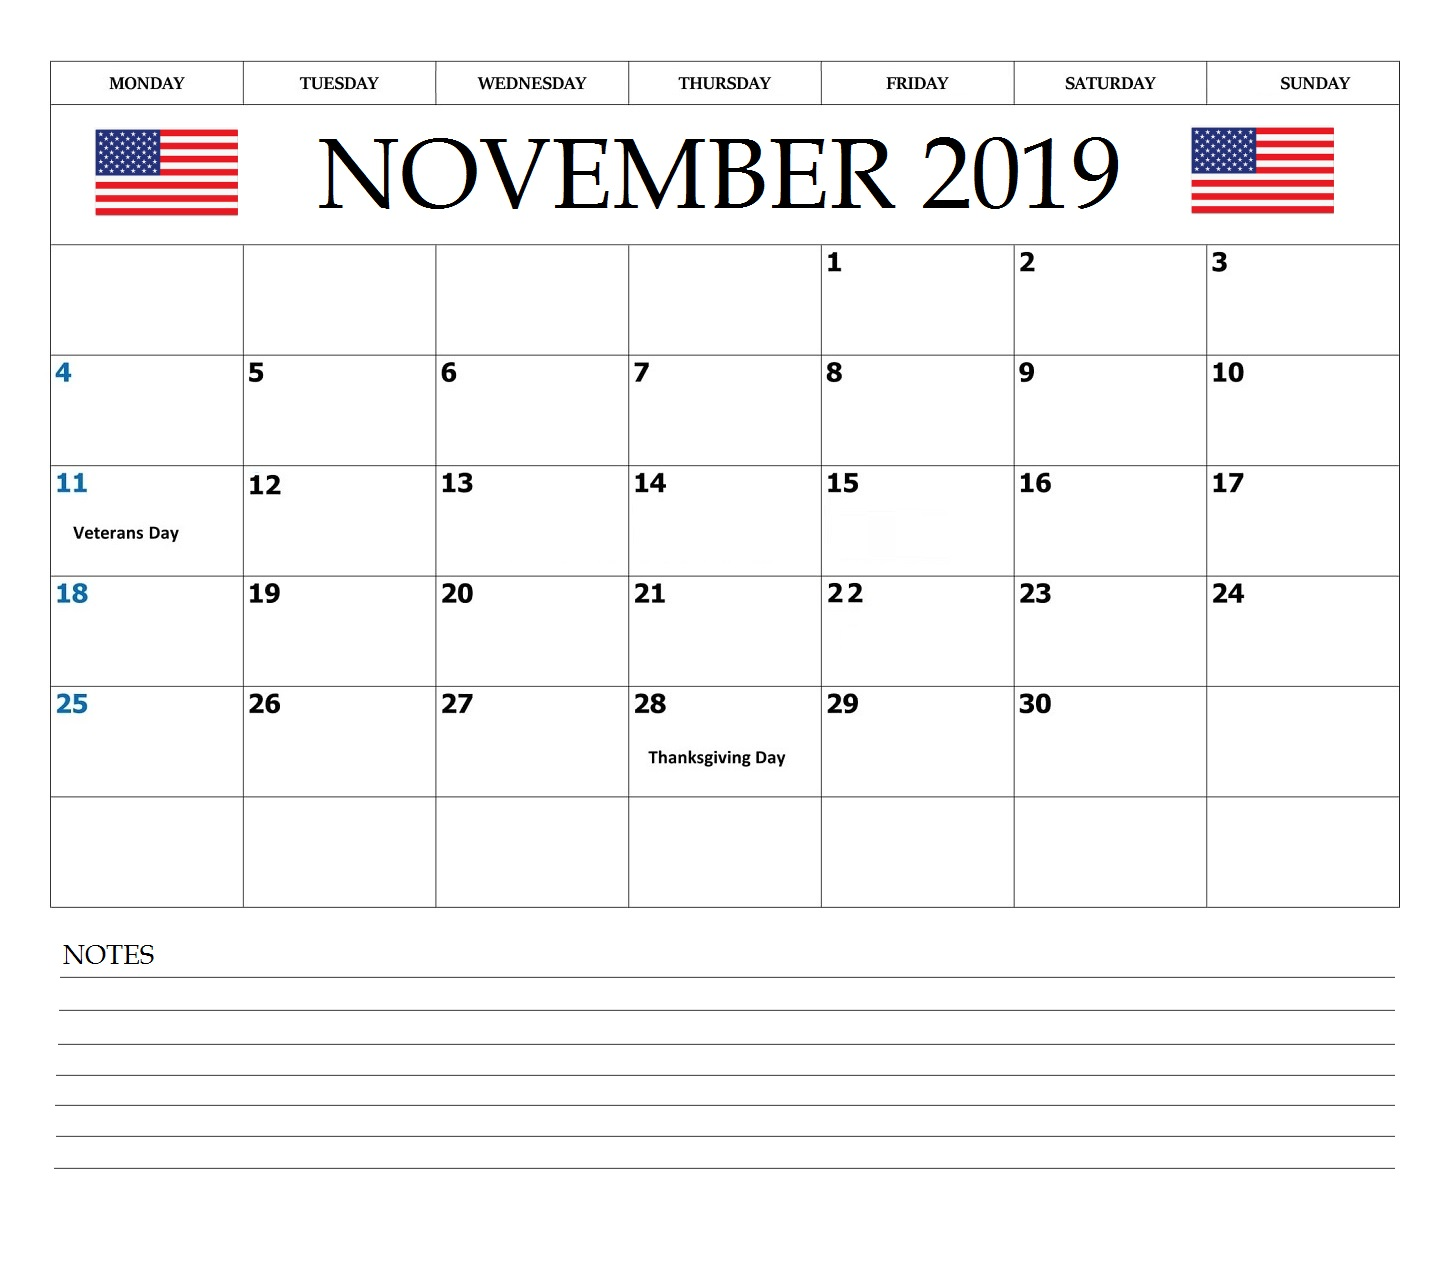 November 2019 USA Federal Holidays Calendar